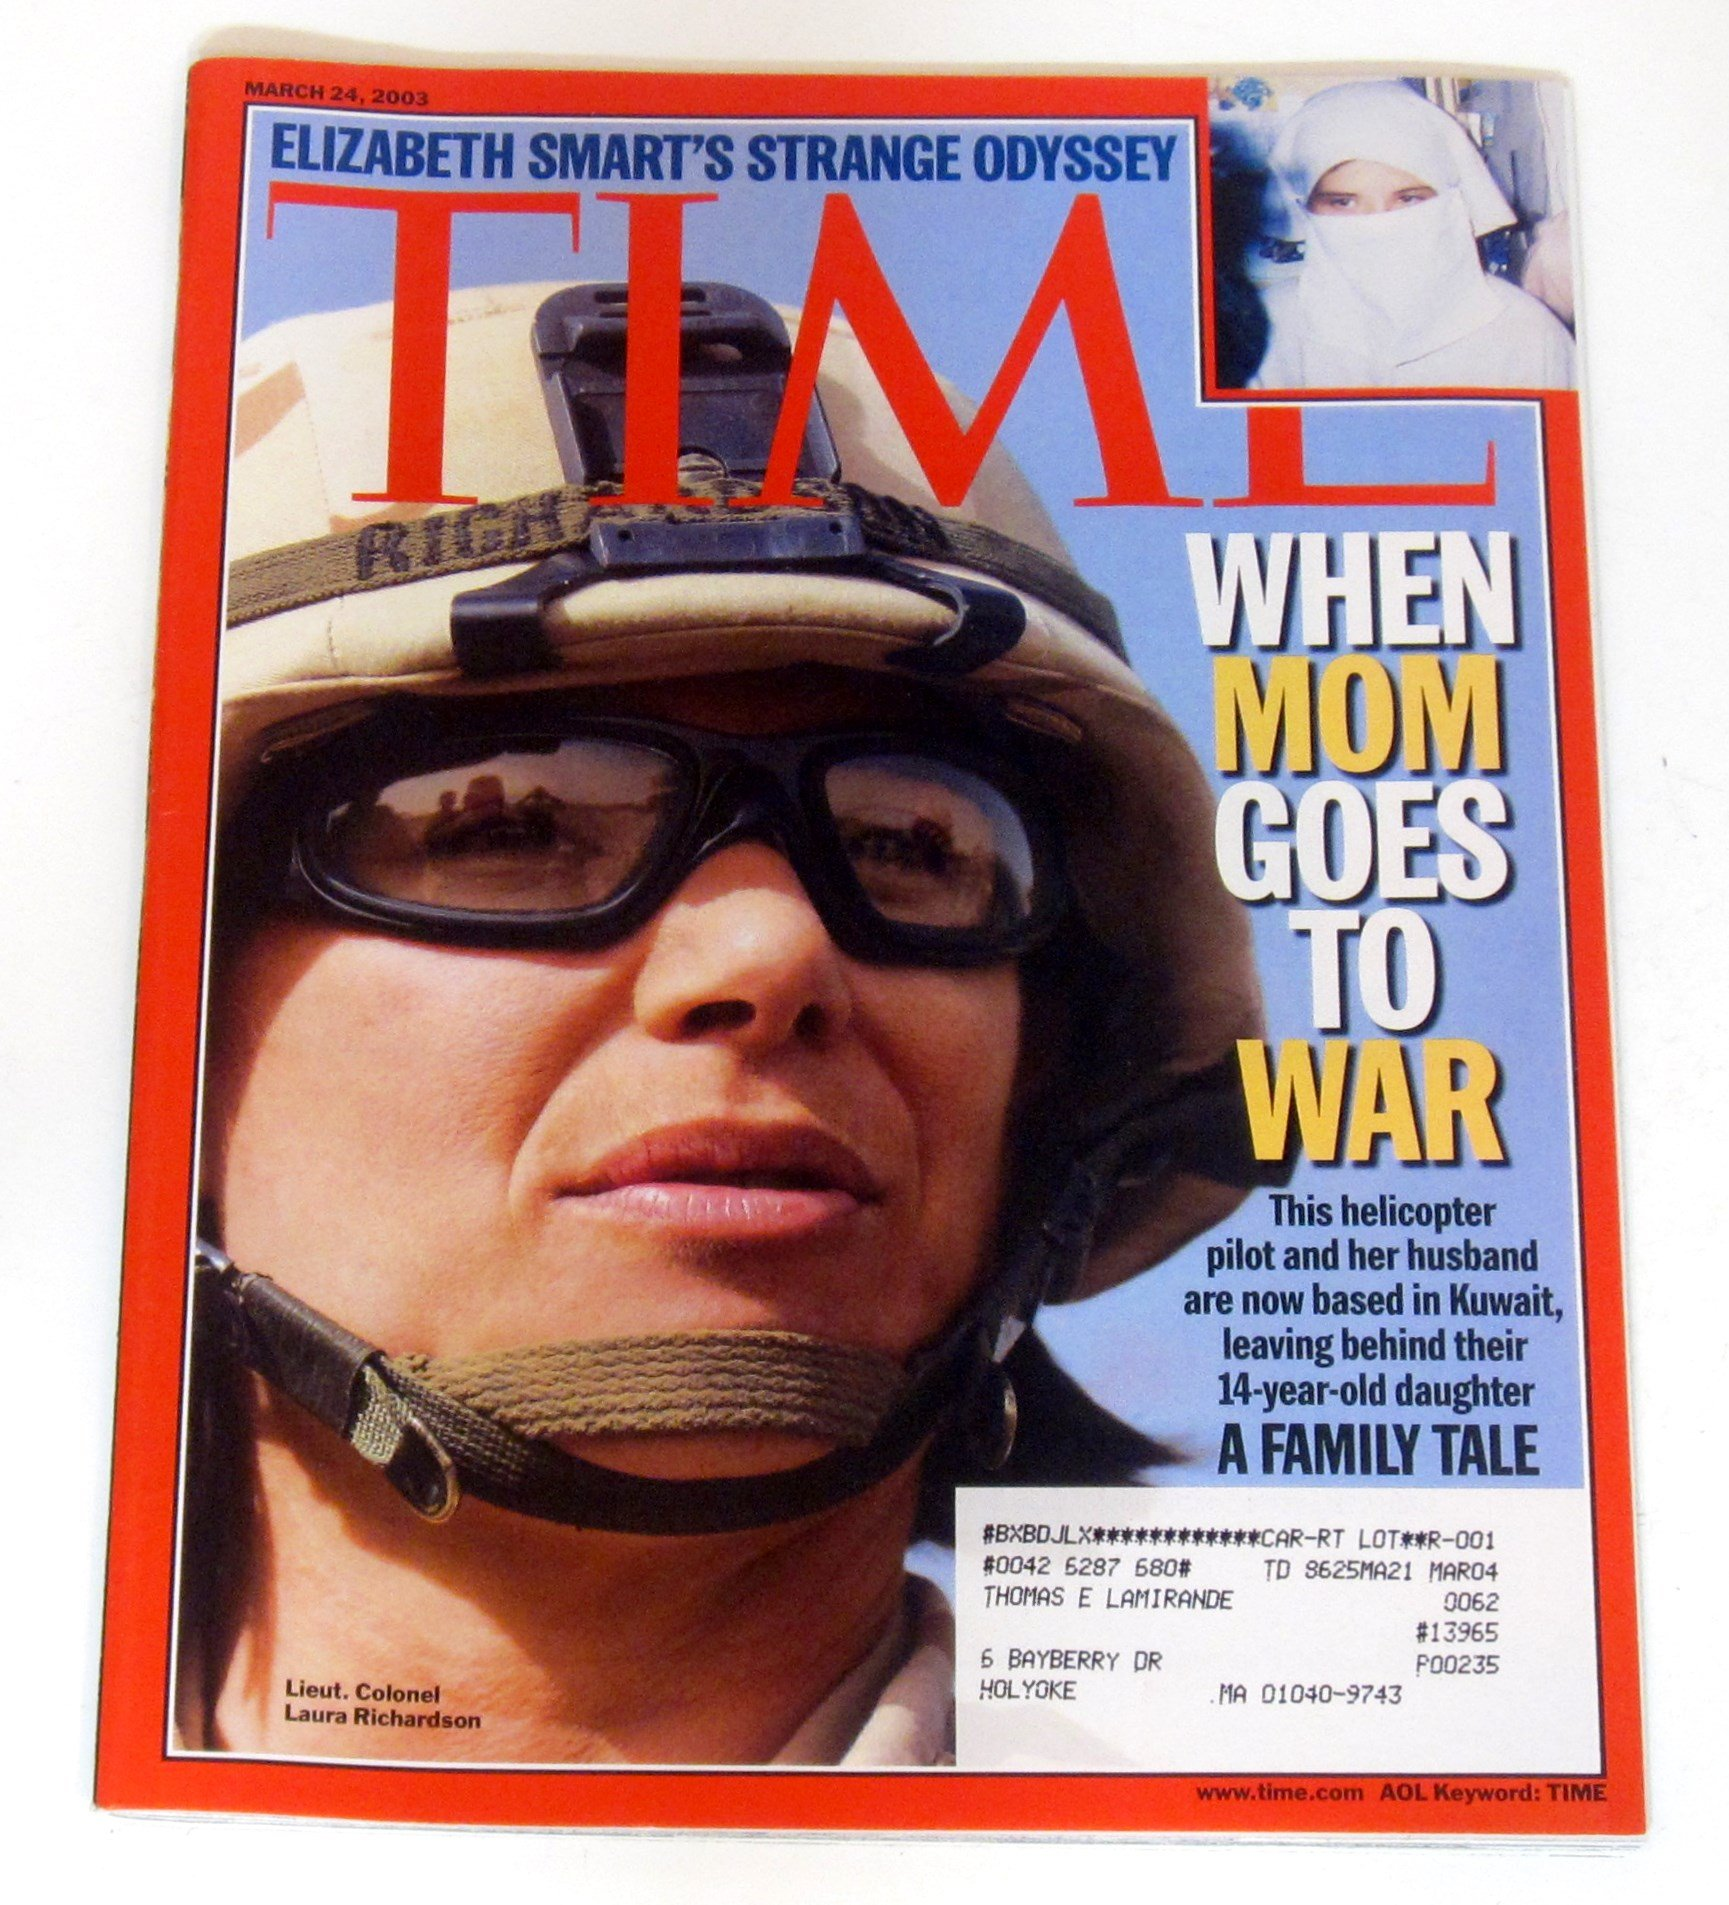 Time Magazine March 24 2003 When Mom Goes to War * Elizabeth Smart's Strange Odyssey pdf epub